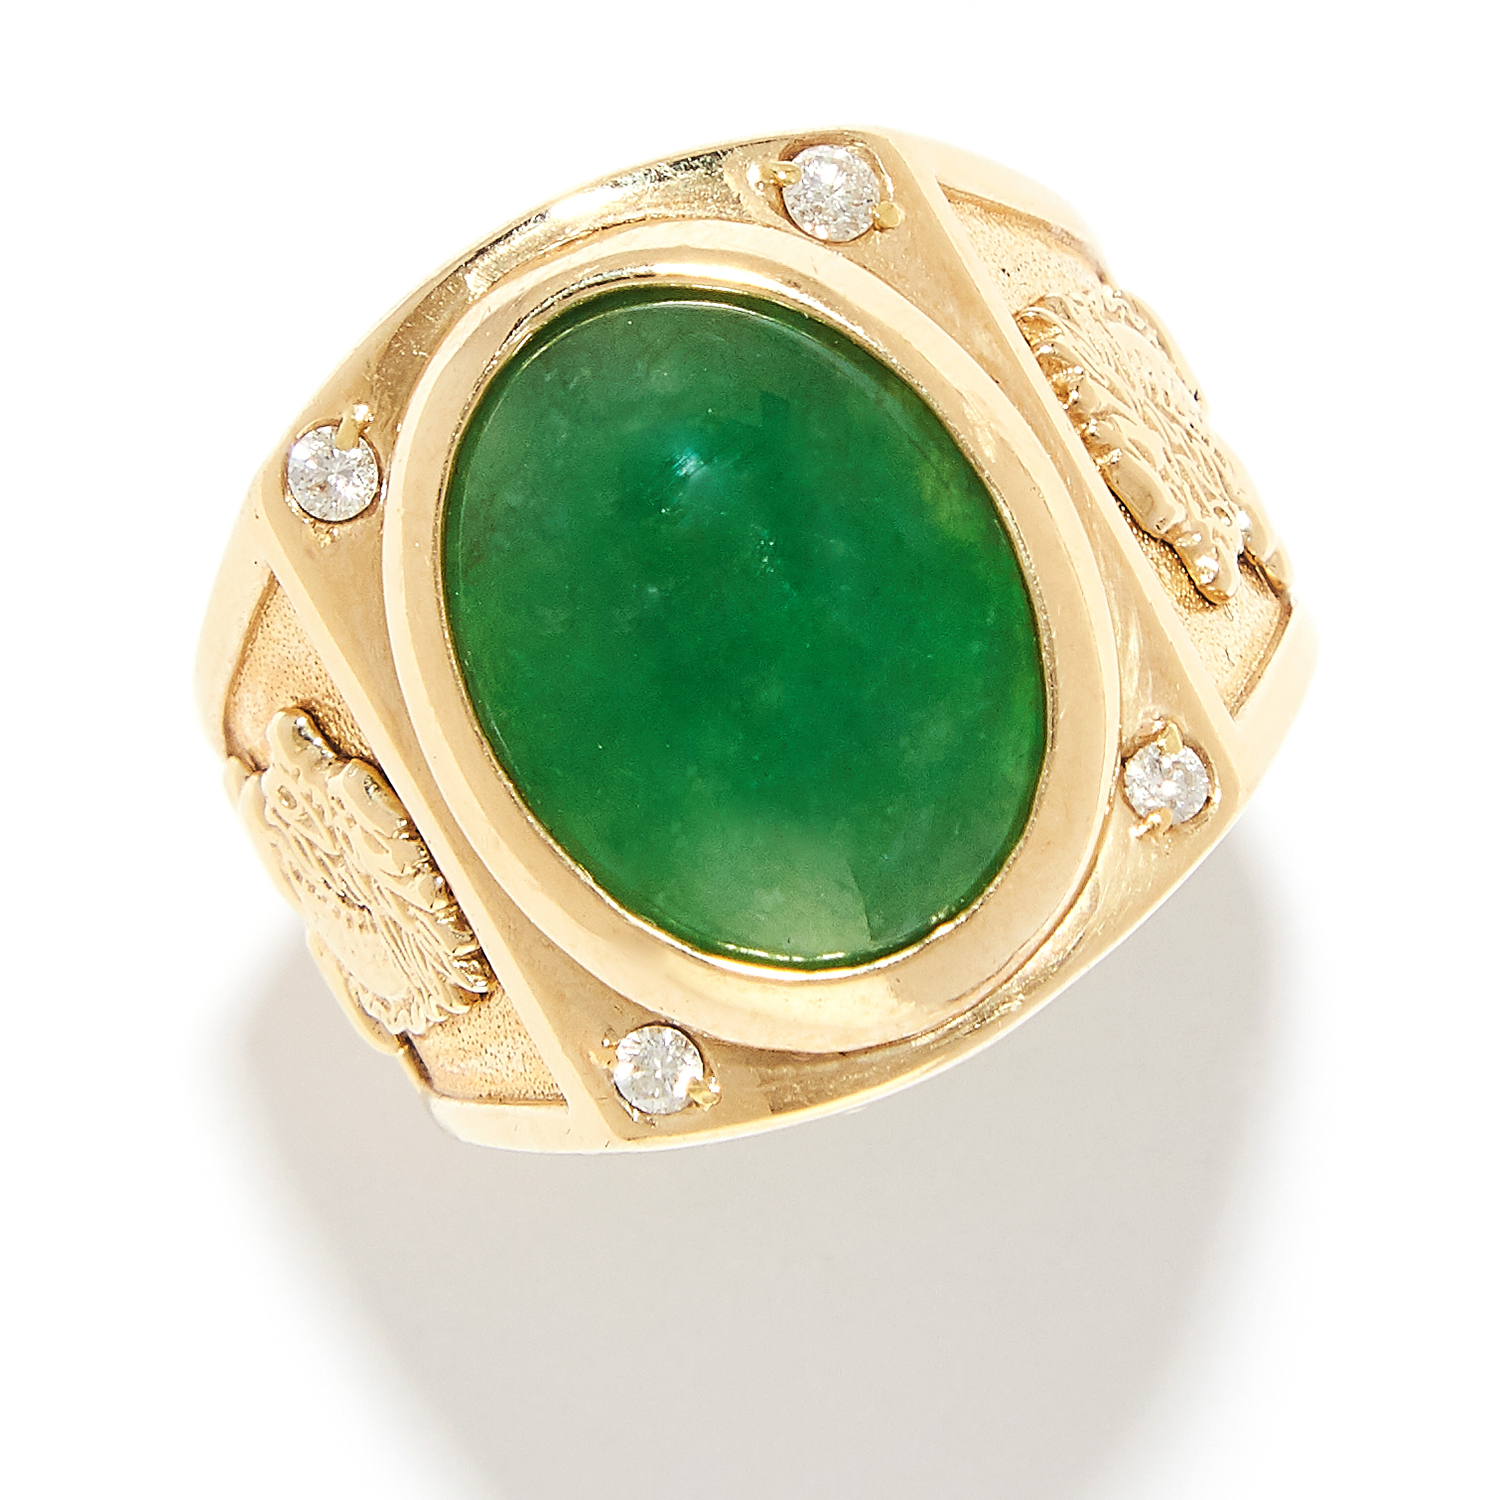 Los 281 - CHINESE JADEITE JADE RING in 24ct yellow gold, set with a polished jade cabochon, Chinese marks,